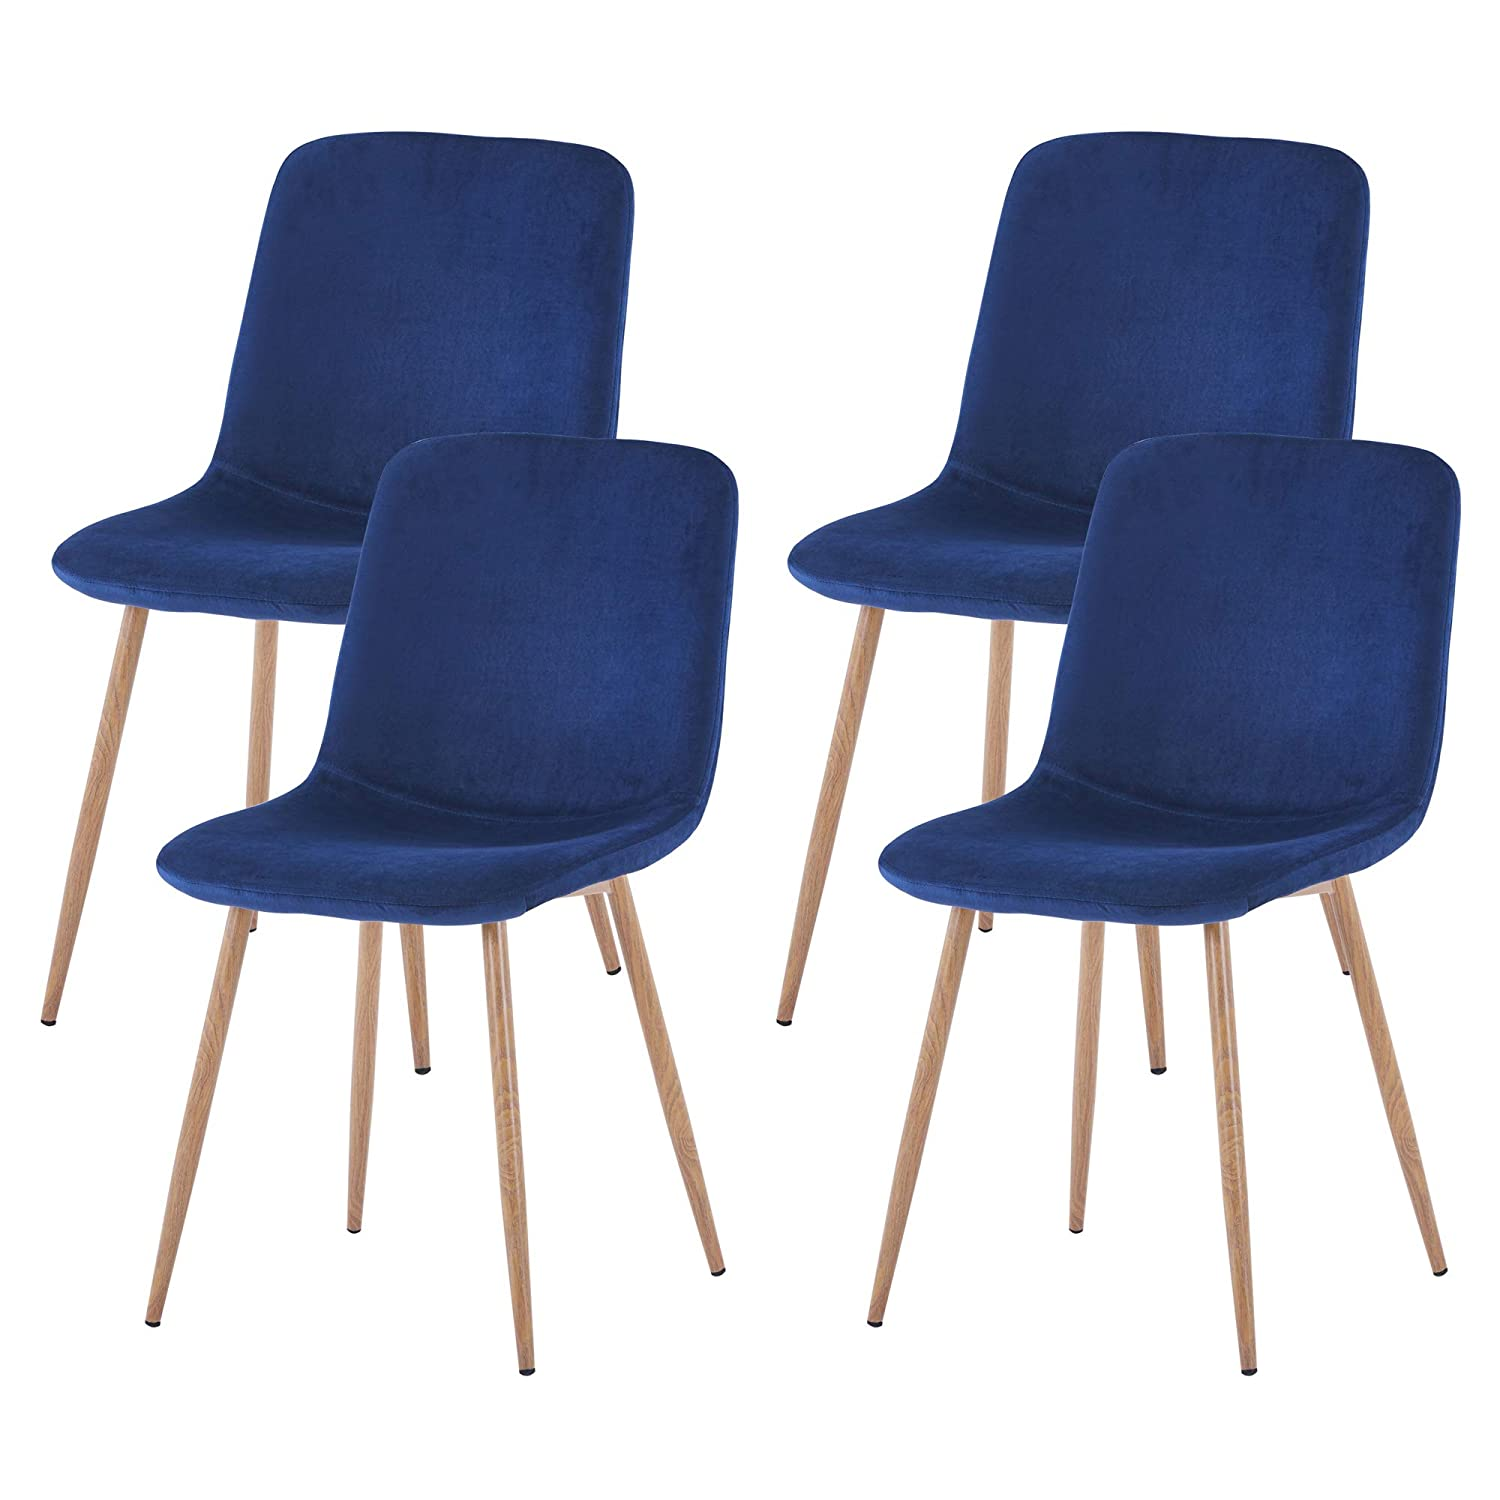 FOODAGE Modern Dining Chairs Set of 4, Velvet Upholstered Kitchen Side Chairs with Sturdy Metal Legs, Gorgeous Chairs for Dining and Living Room Blue